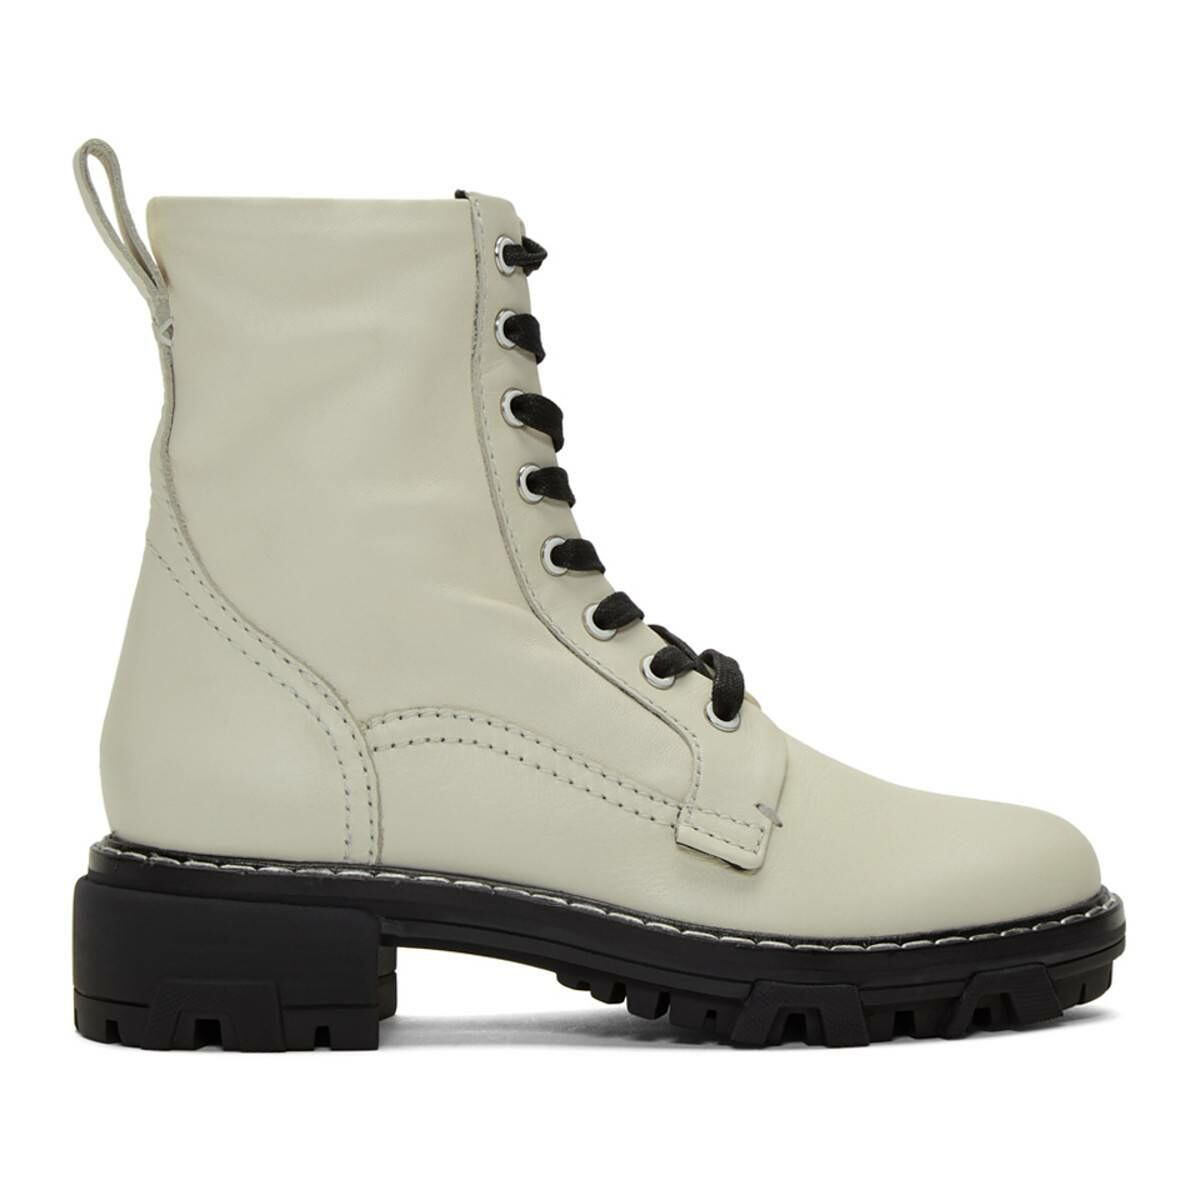 rag and bone Off-White Shiloh Boots Ssense USA WOMEN Women SHOES Womens ANKLE BOOTS